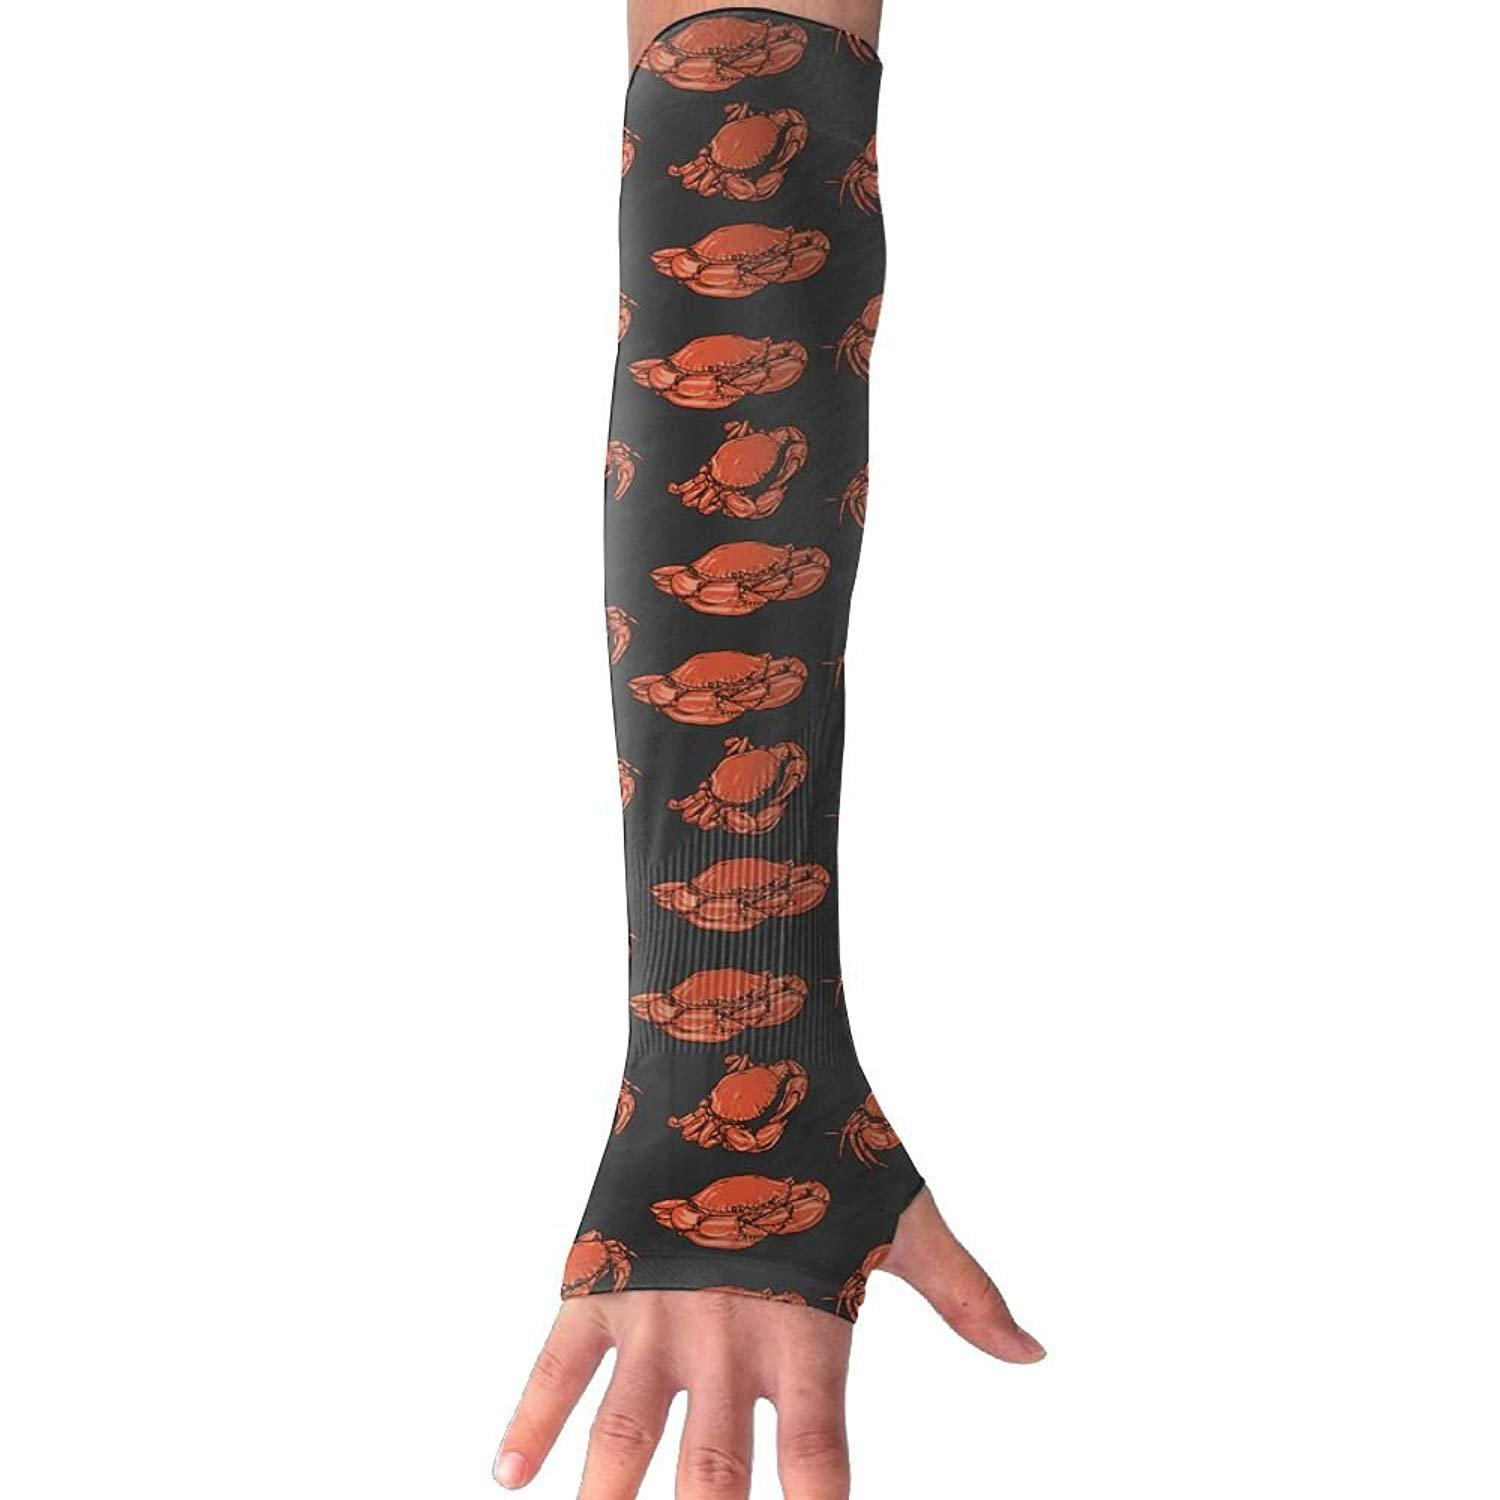 Unisex Crab in Black Sunscreen Outdoor Travel Arm Warmer Long Sleeves Glove